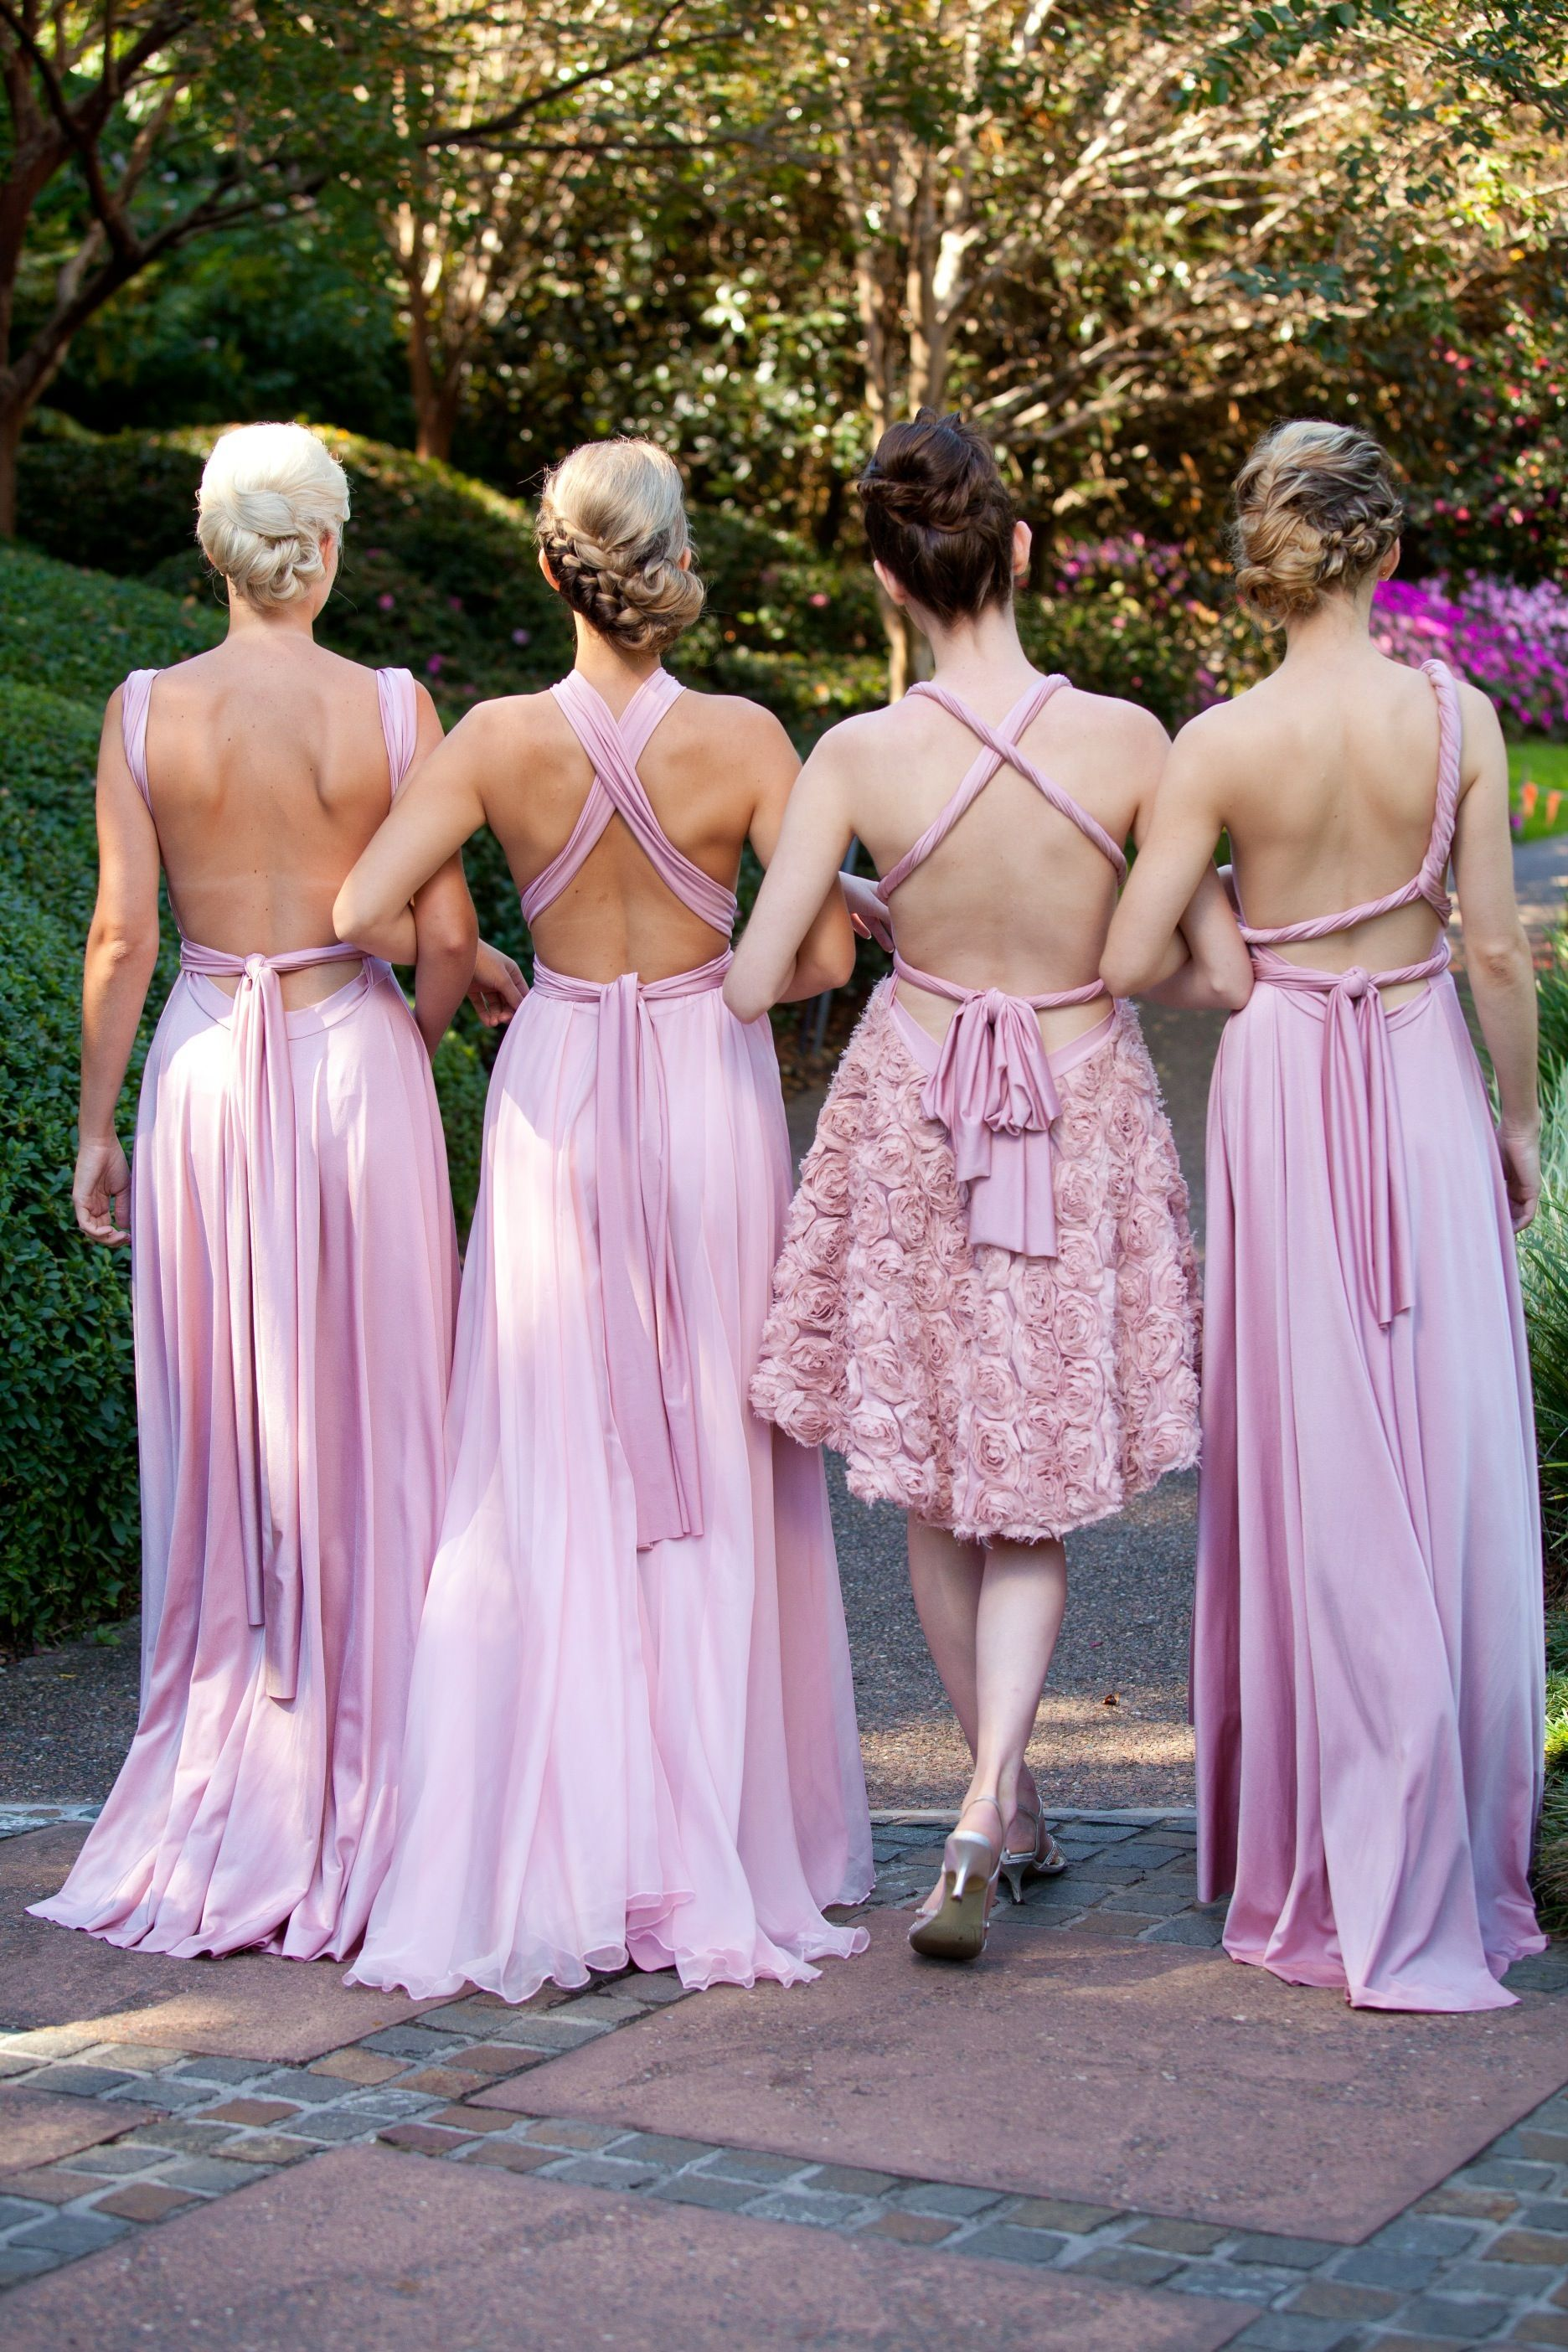 Gorgeous bridesmaid dresses goddess style httpswww gorgeous bridesmaid dresses goddess style httpsbellebridesmaid ombrellifo Images